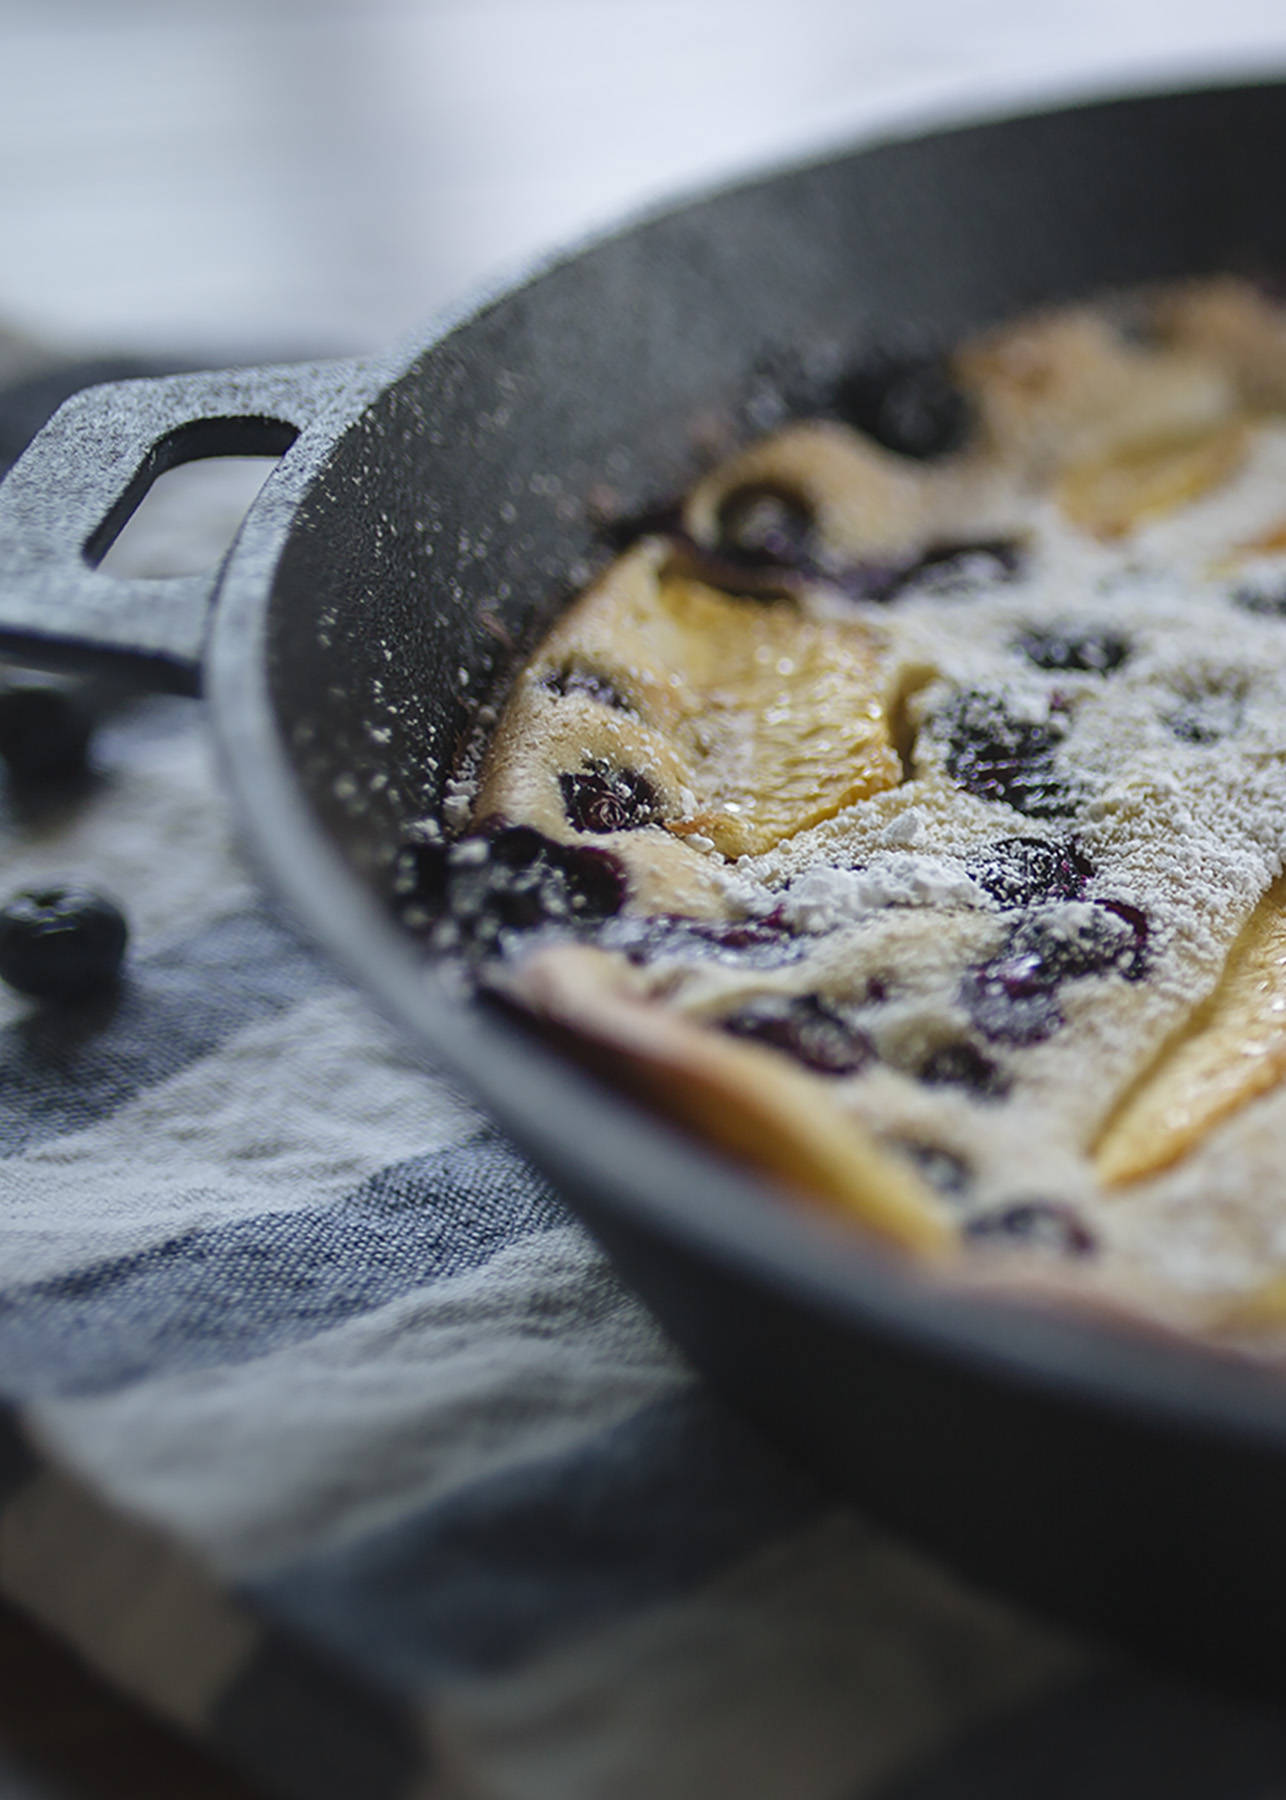 cast iron, Peach Blueberry Clafoutis, recipe, easy, dessert, brunch, fruit, summer, french